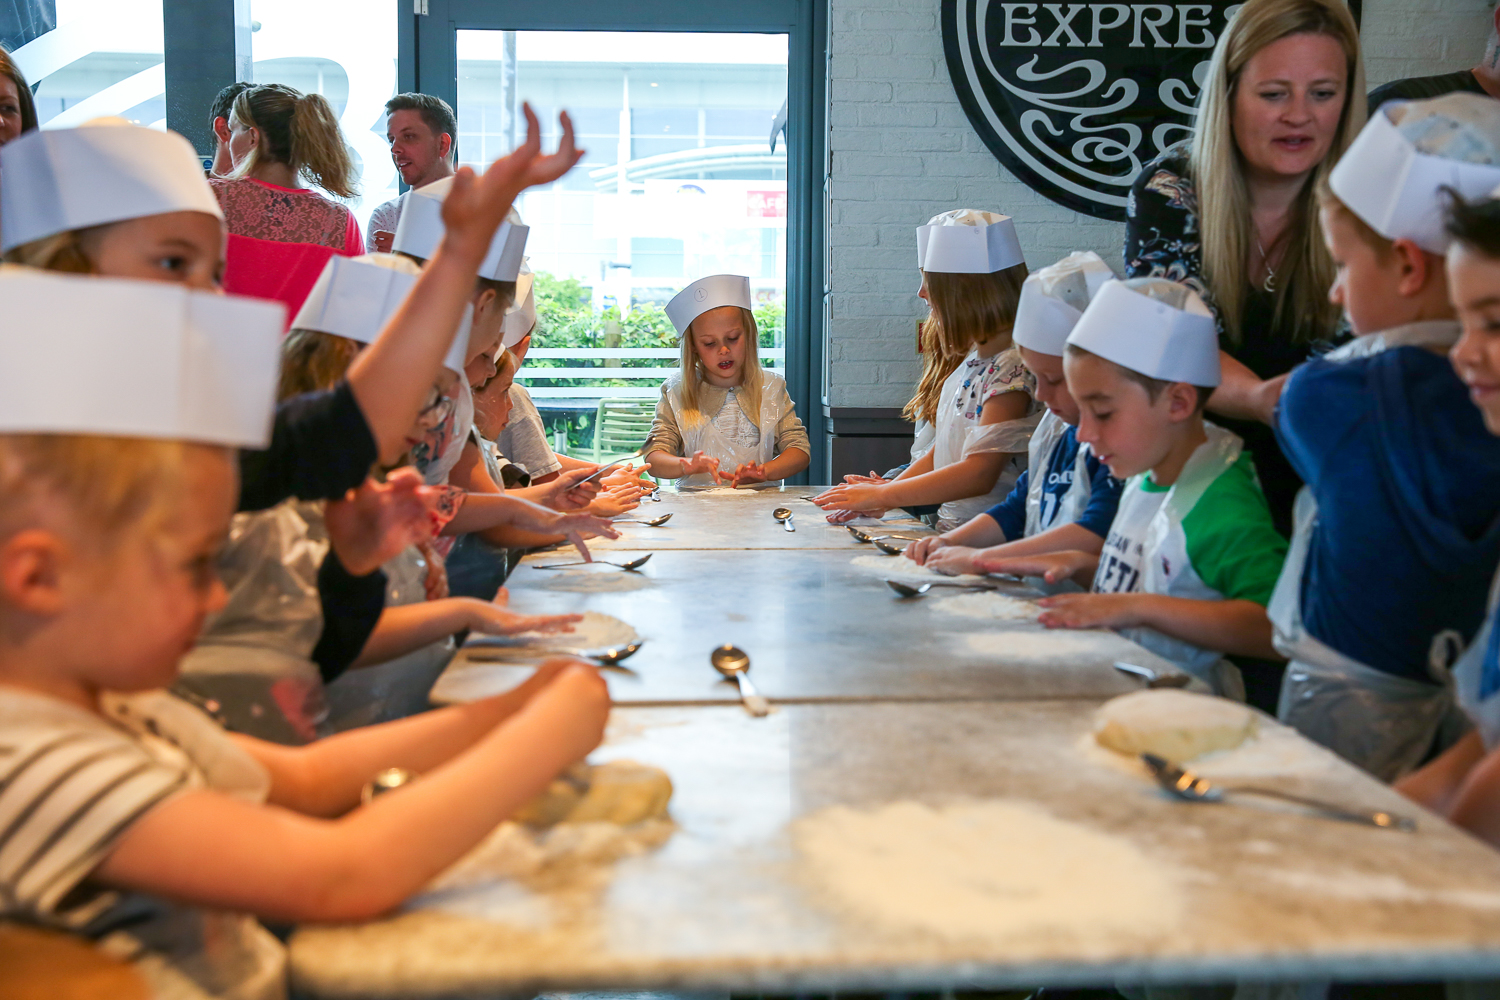 Pizza-Express-Kids-indoor-Birthday-Party-family-photographer-South-Wales-Natalia-Smith-Photography-0002.jpg